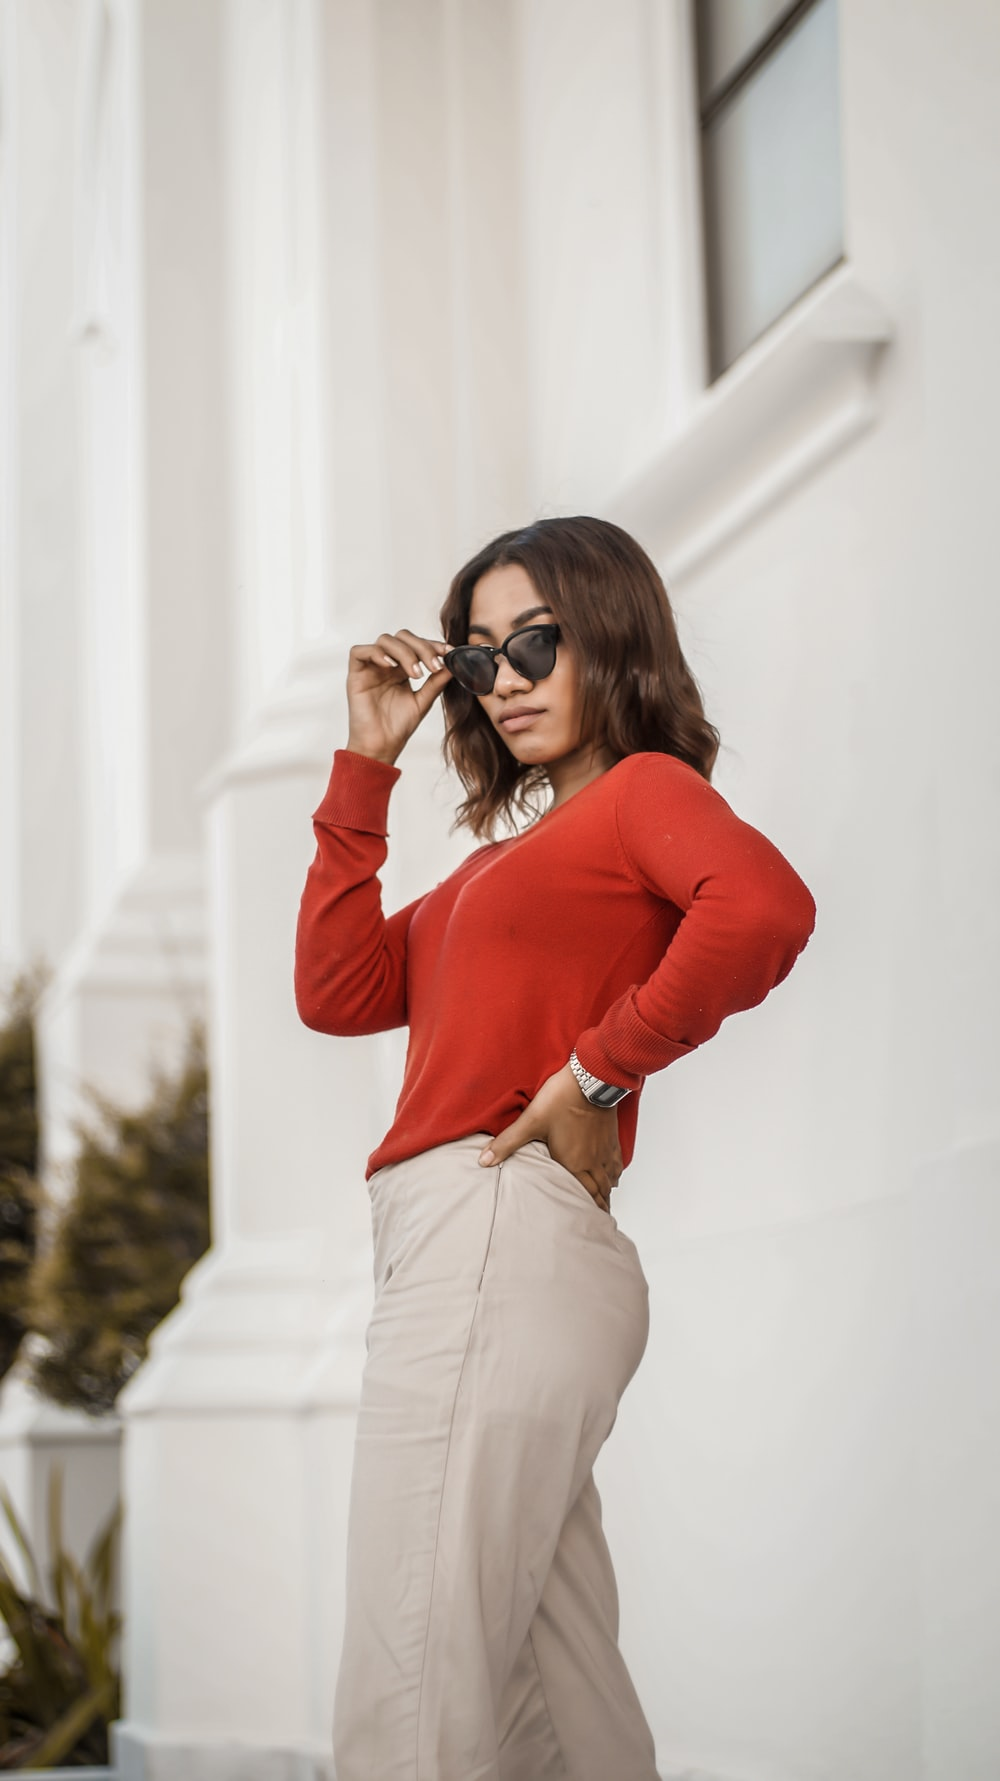 woman in red long sleeve shirt and beige pants wearing black sunglasses